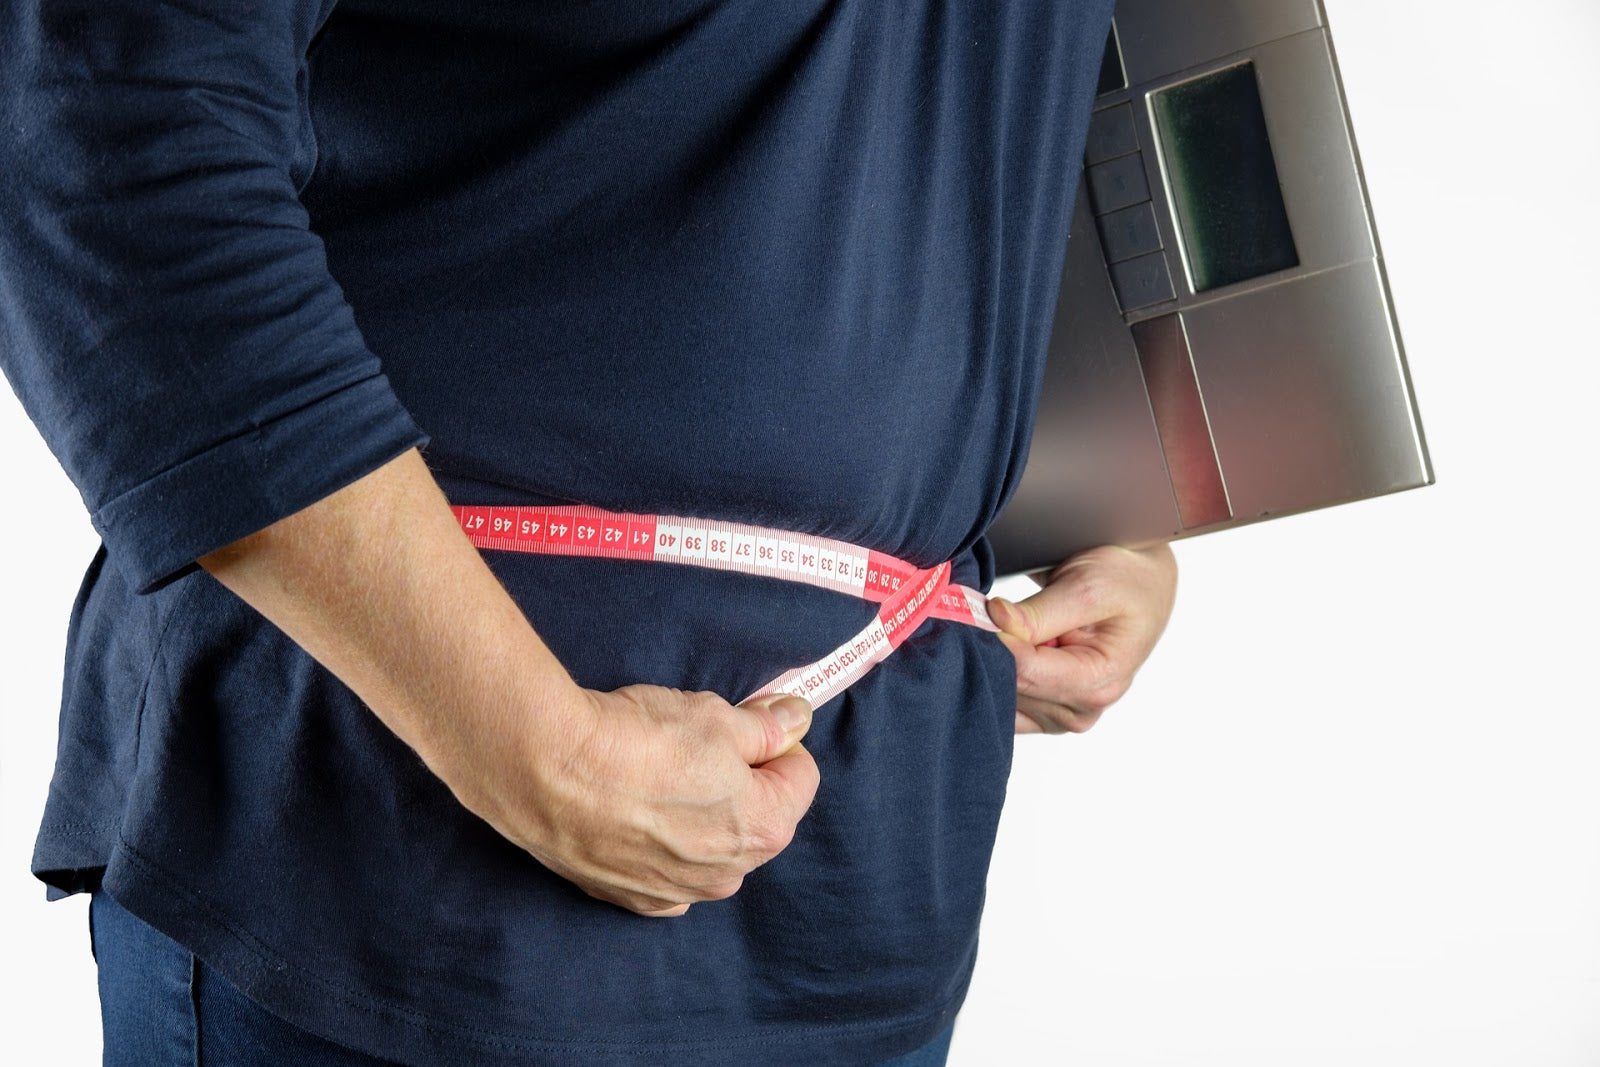 Overweight or underweight - irregular periods treatment